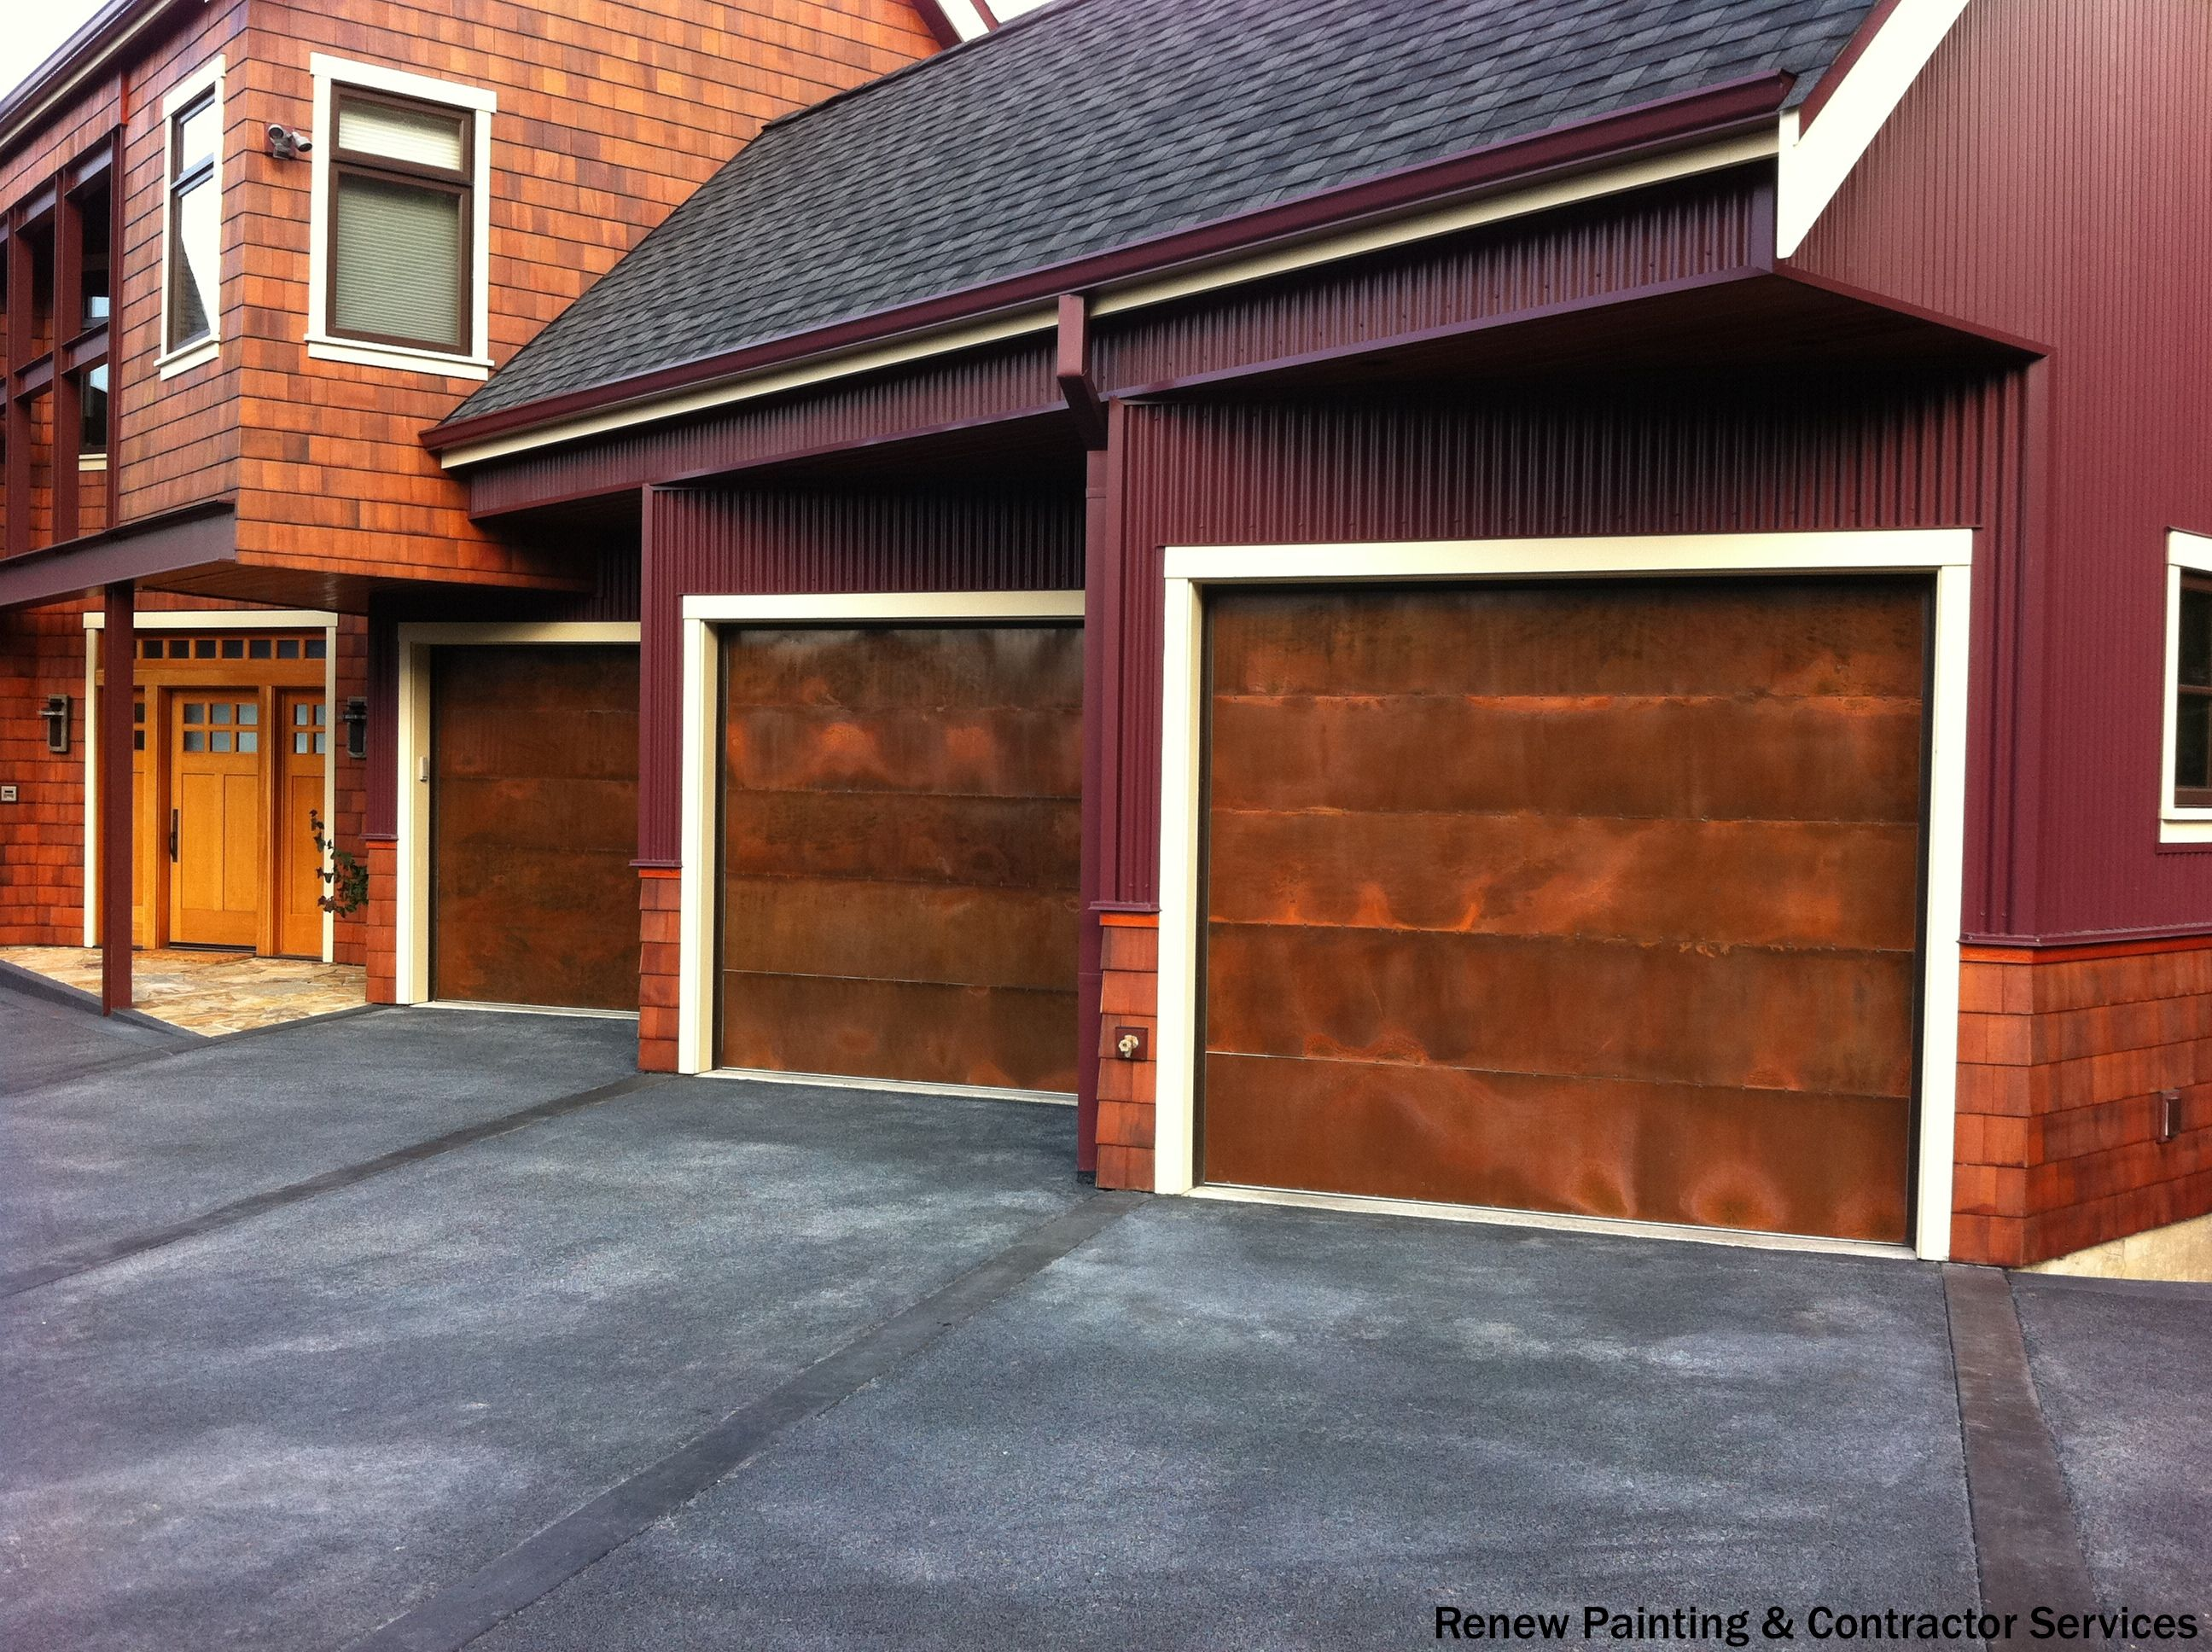 Very unique 3-car, angled garage with a nice burgundy painted siding and paved driveway. If you are looking to repair or remodel your garage door, see what it will cost you.